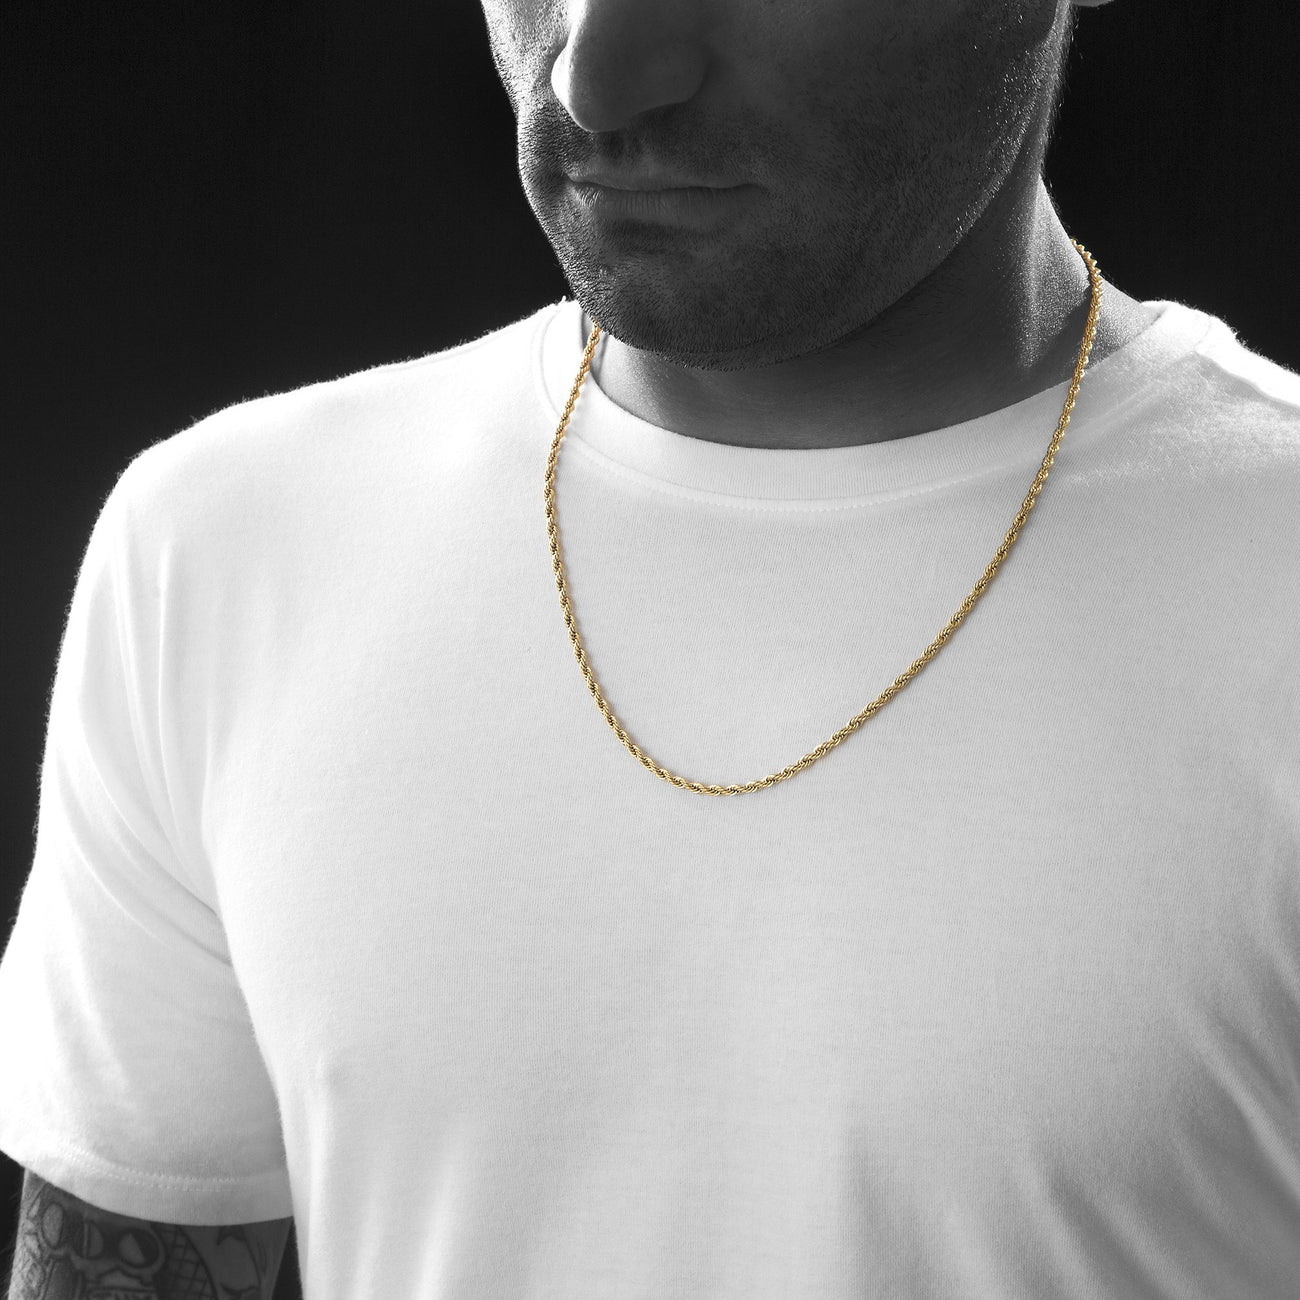 3mm Gold Rope Dookie Chain , Chains, SpicyIce - 3